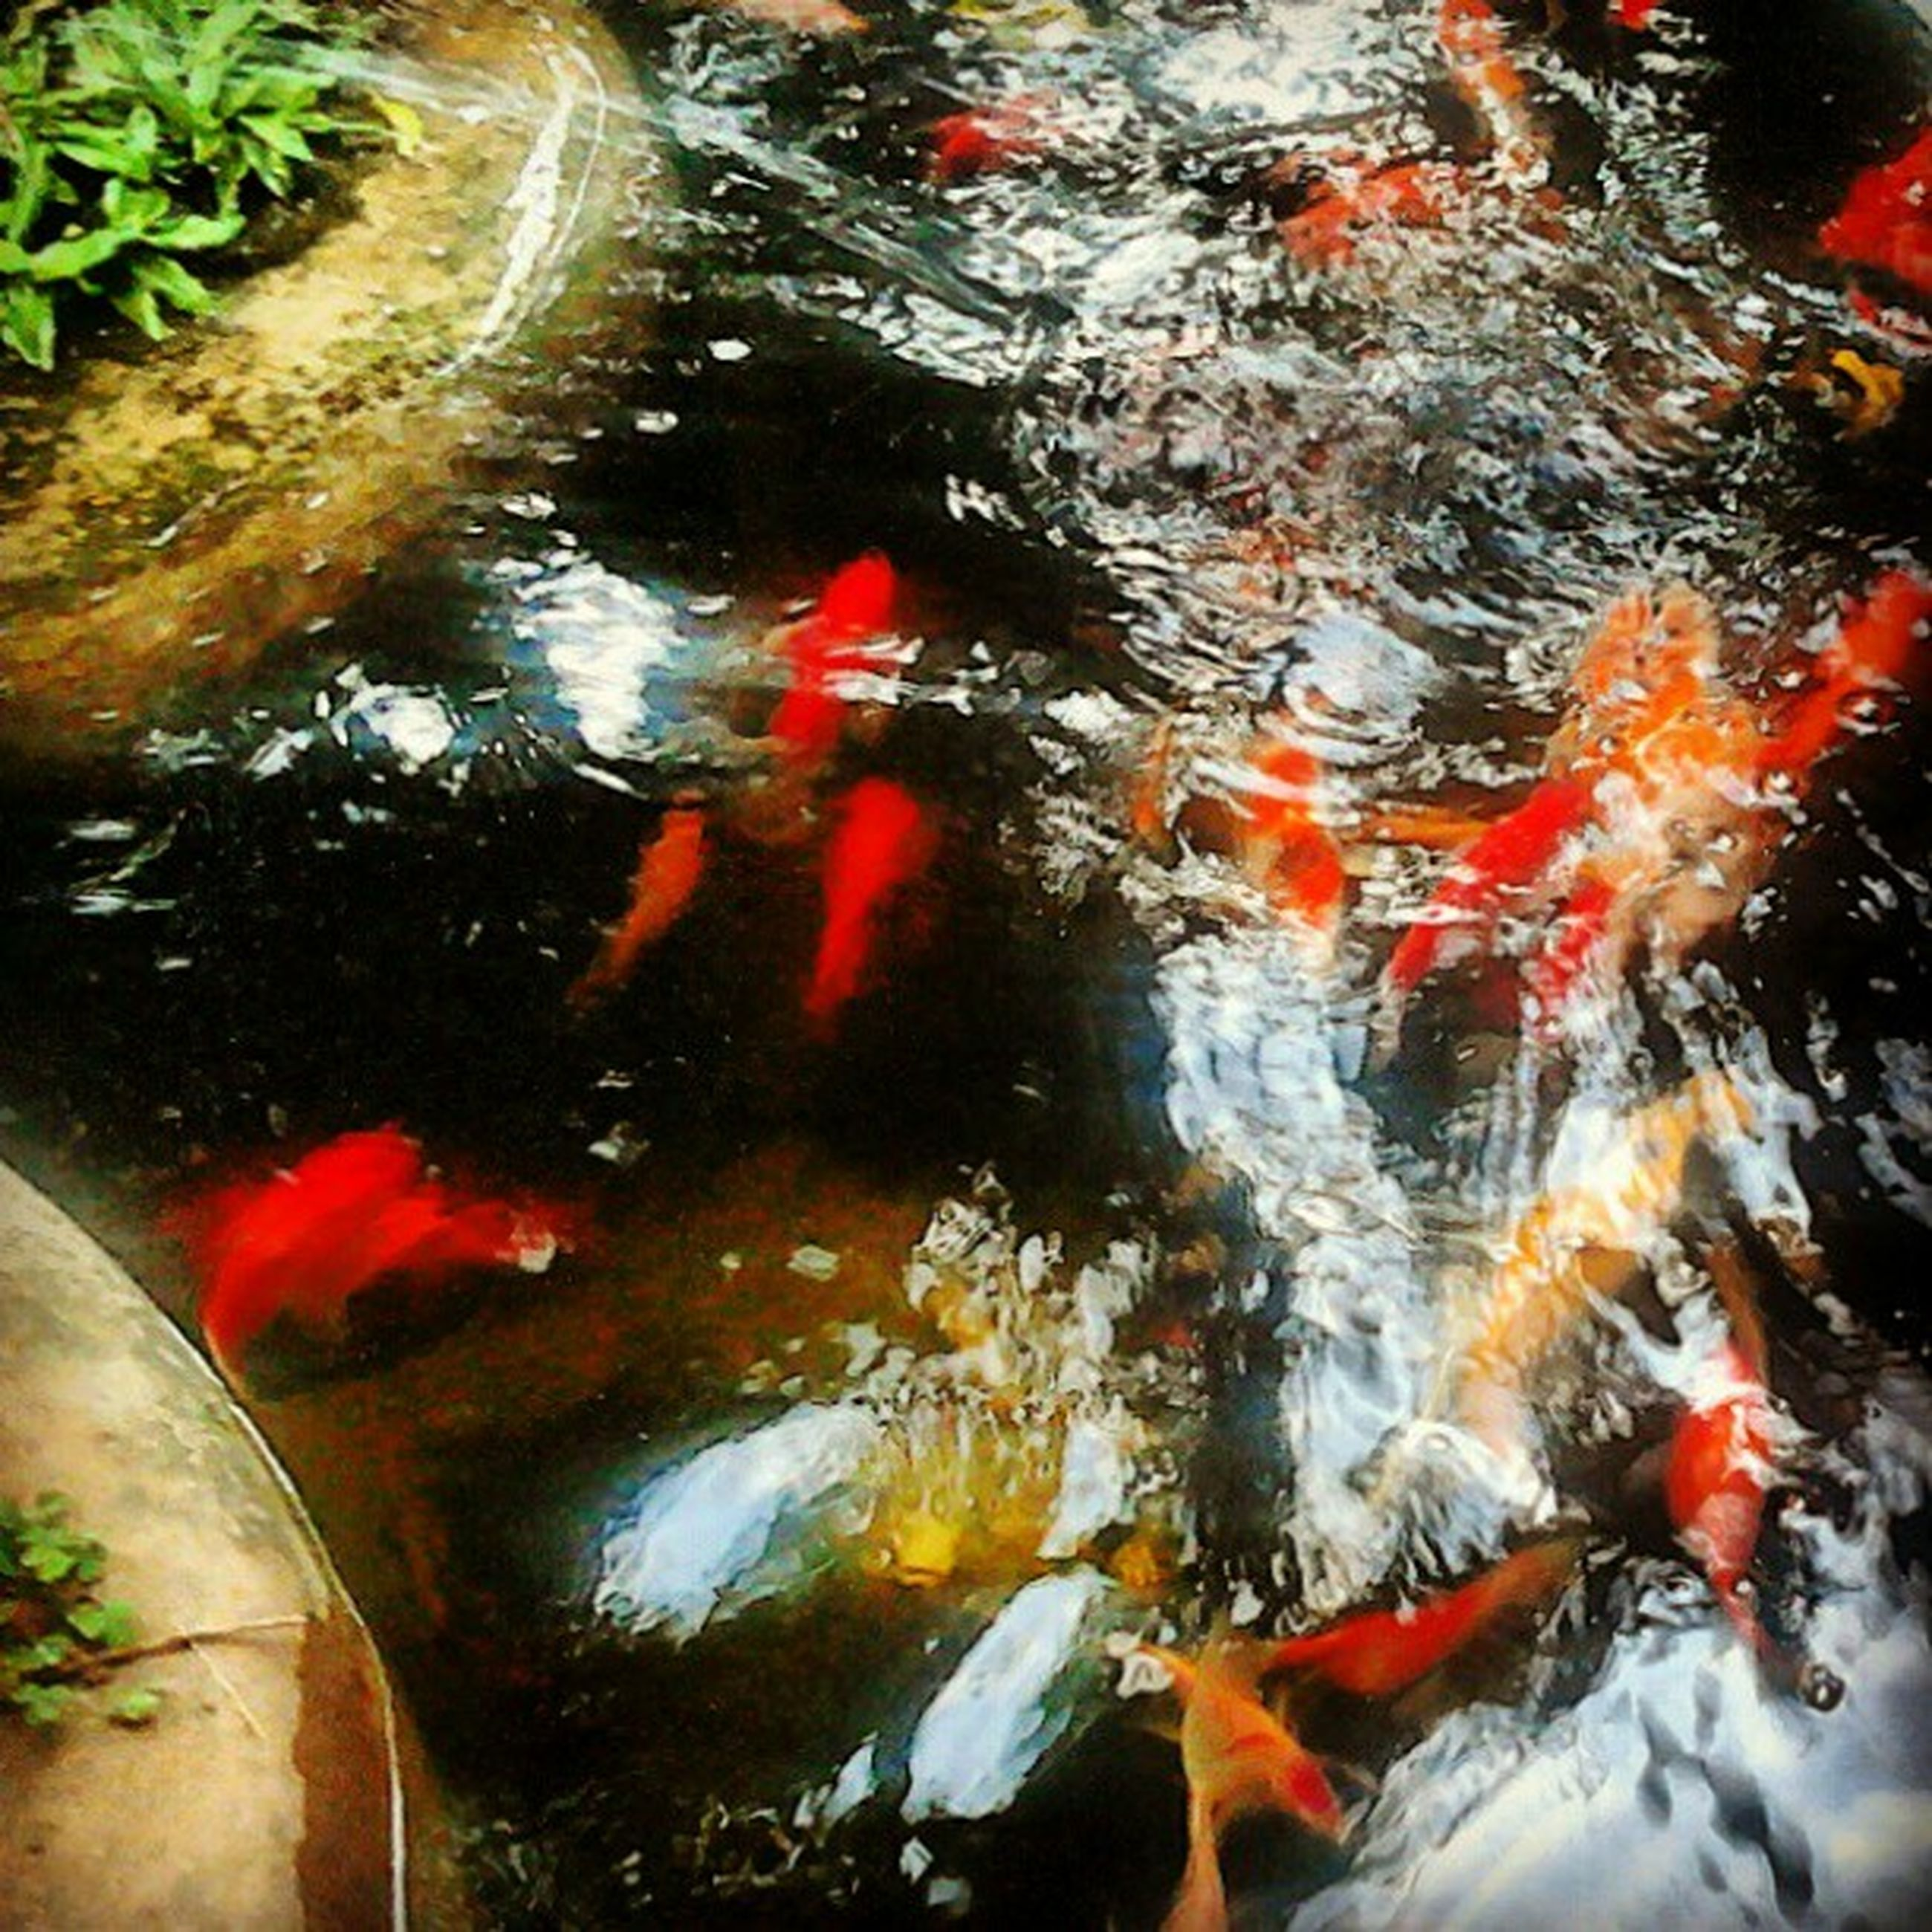 water, reflection, high angle view, pond, red, transparent, transportation, koi carp, wet, puddle, nature, fish, mode of transport, outdoors, lake, school of fish, street, day, swimming, orange color